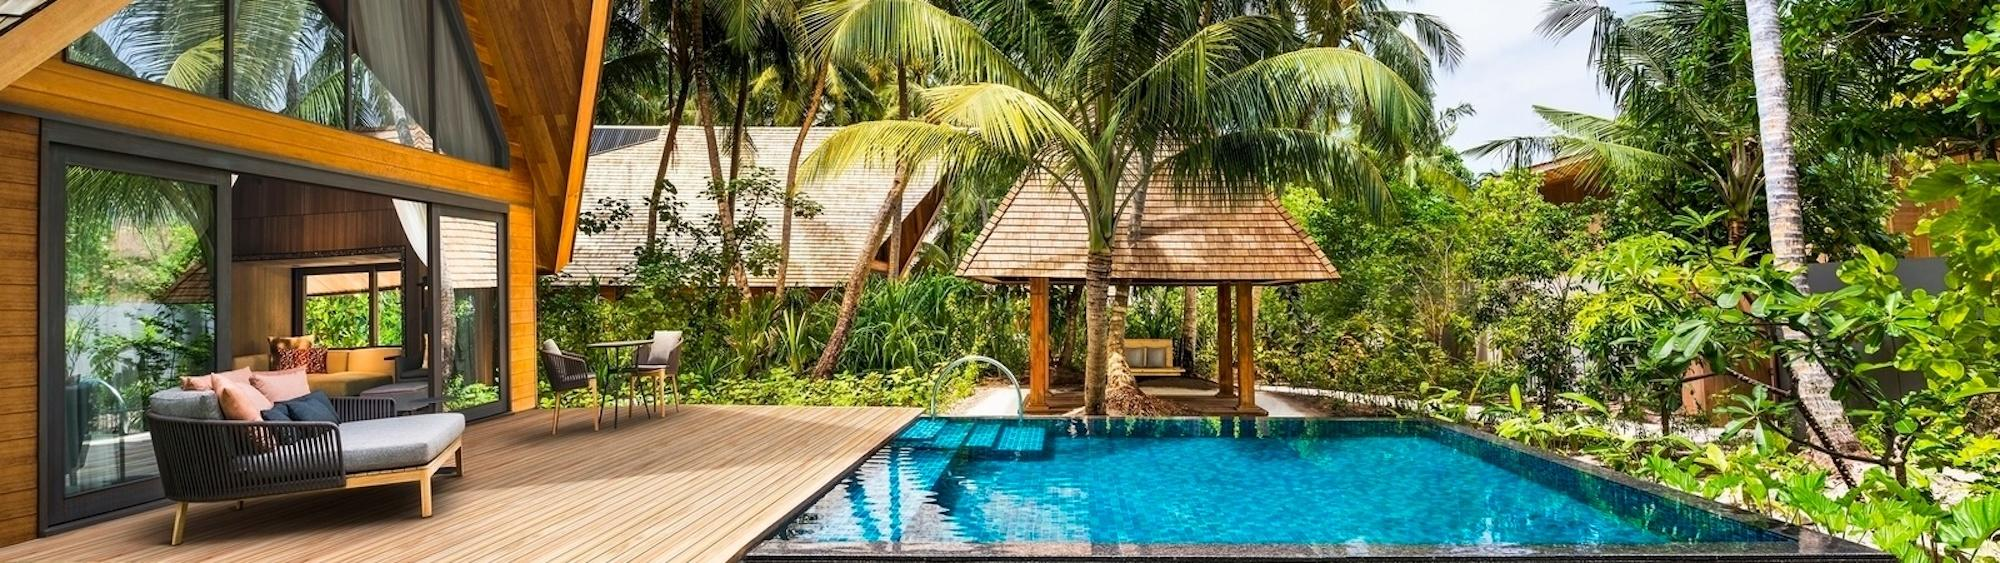 Travel Tuesday: What to Know About Amex's Fine Hotels + Resorts Program